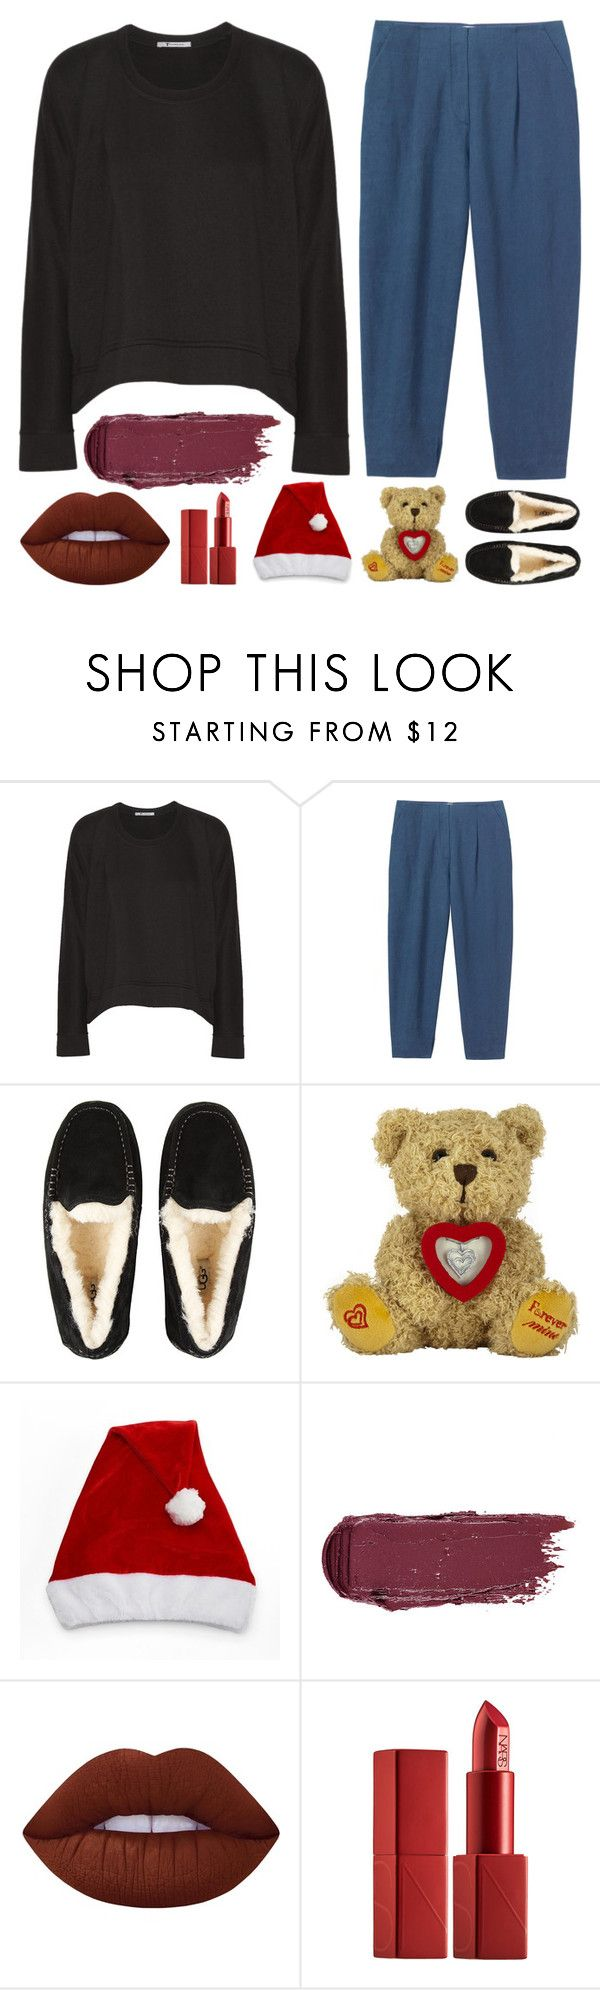 """All I want fir Christmas is ... YOU~"" by sweet-jolly-looks ❤ liked on Polyvore featuring T By Alexander Wang, UGG, Lime Crime, NARS Cosmetics, Christmas, Home, slippers and santahat"